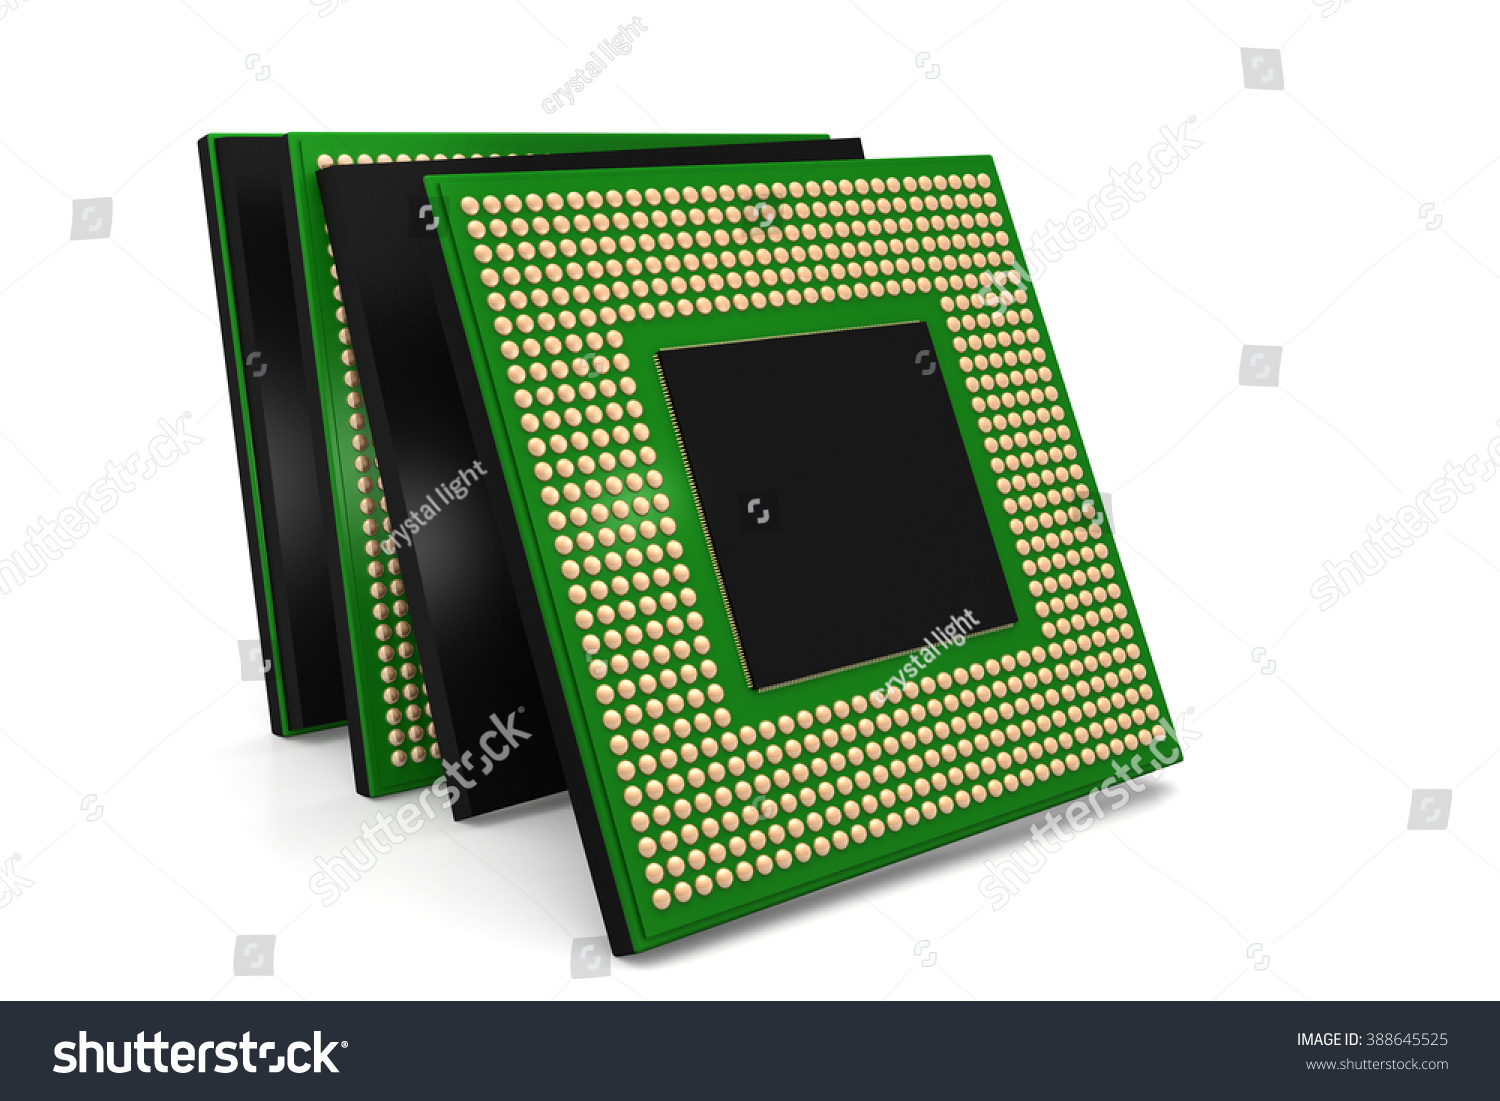 Royalty Free Stock Illustration Of Electronic Integrated Circuit Circuits Crystals Chip